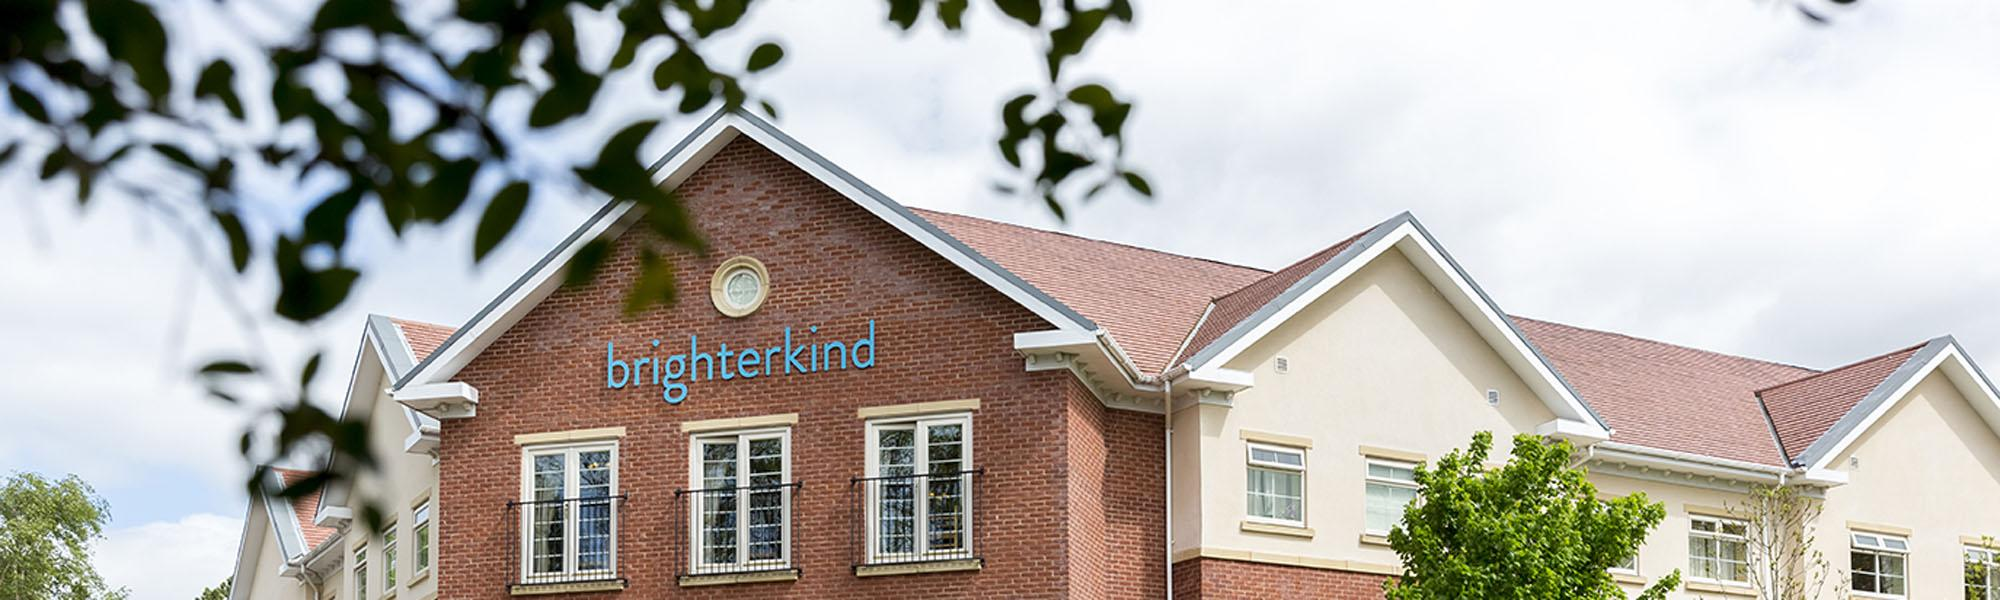 brighterkind Avery Lodge in Lincolnshire